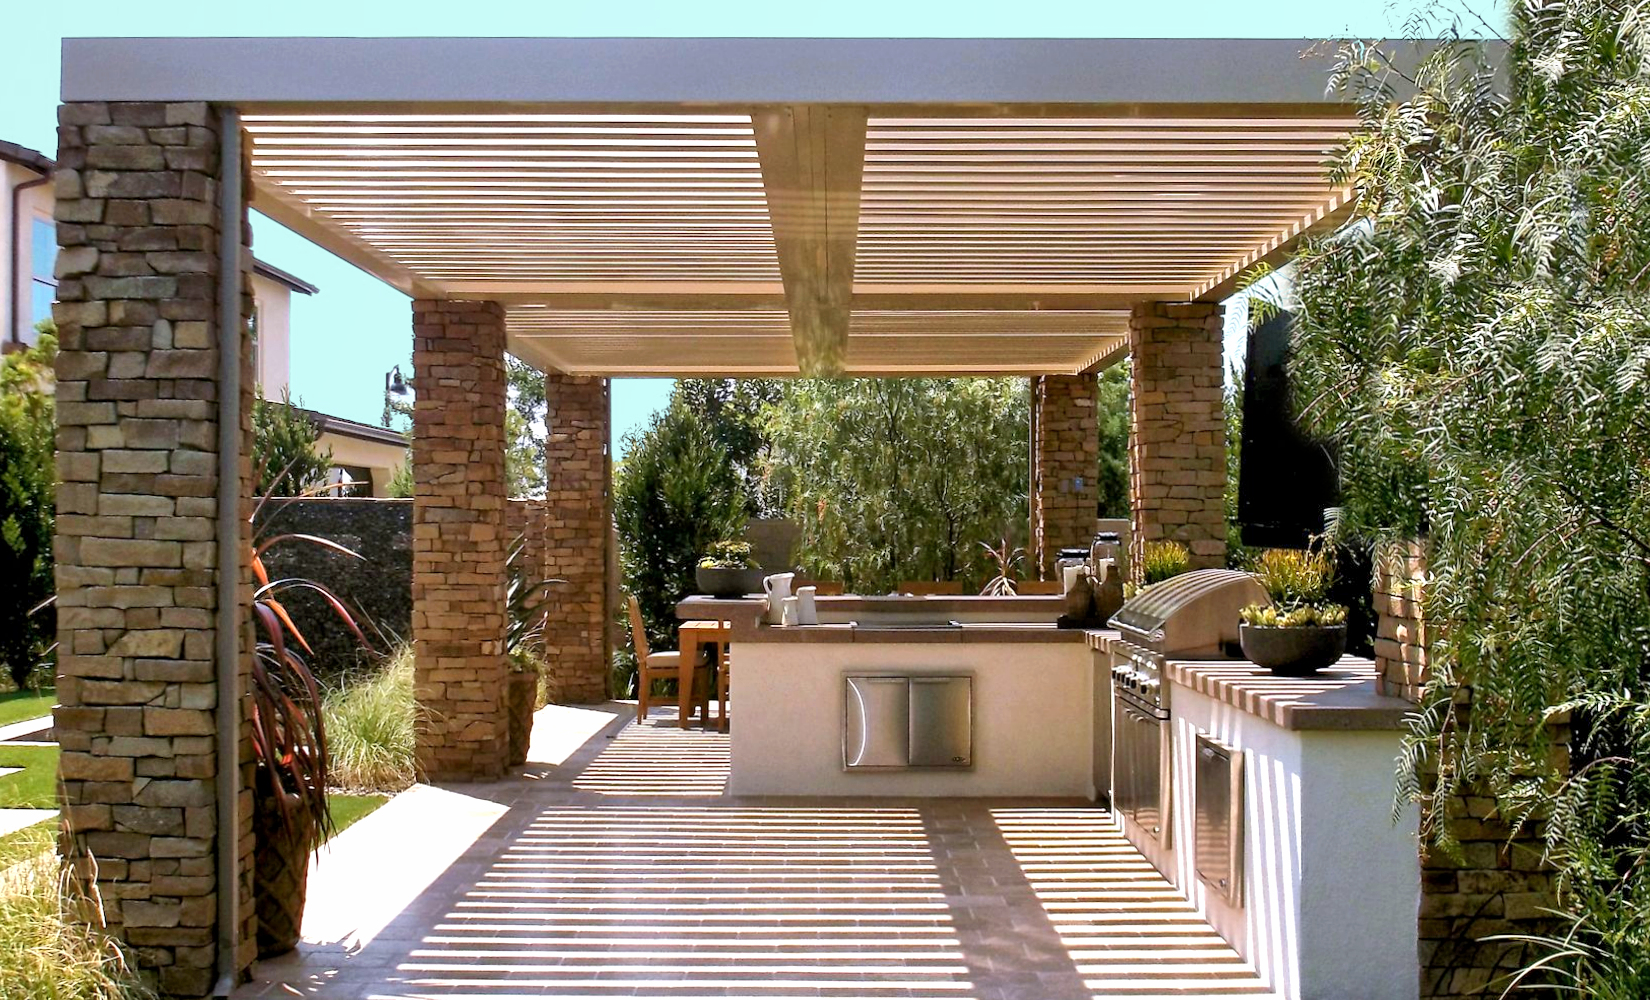 Patio Covers & Enclosures - Artechroofing on Backyard Patio Cover Ideas  id=74259